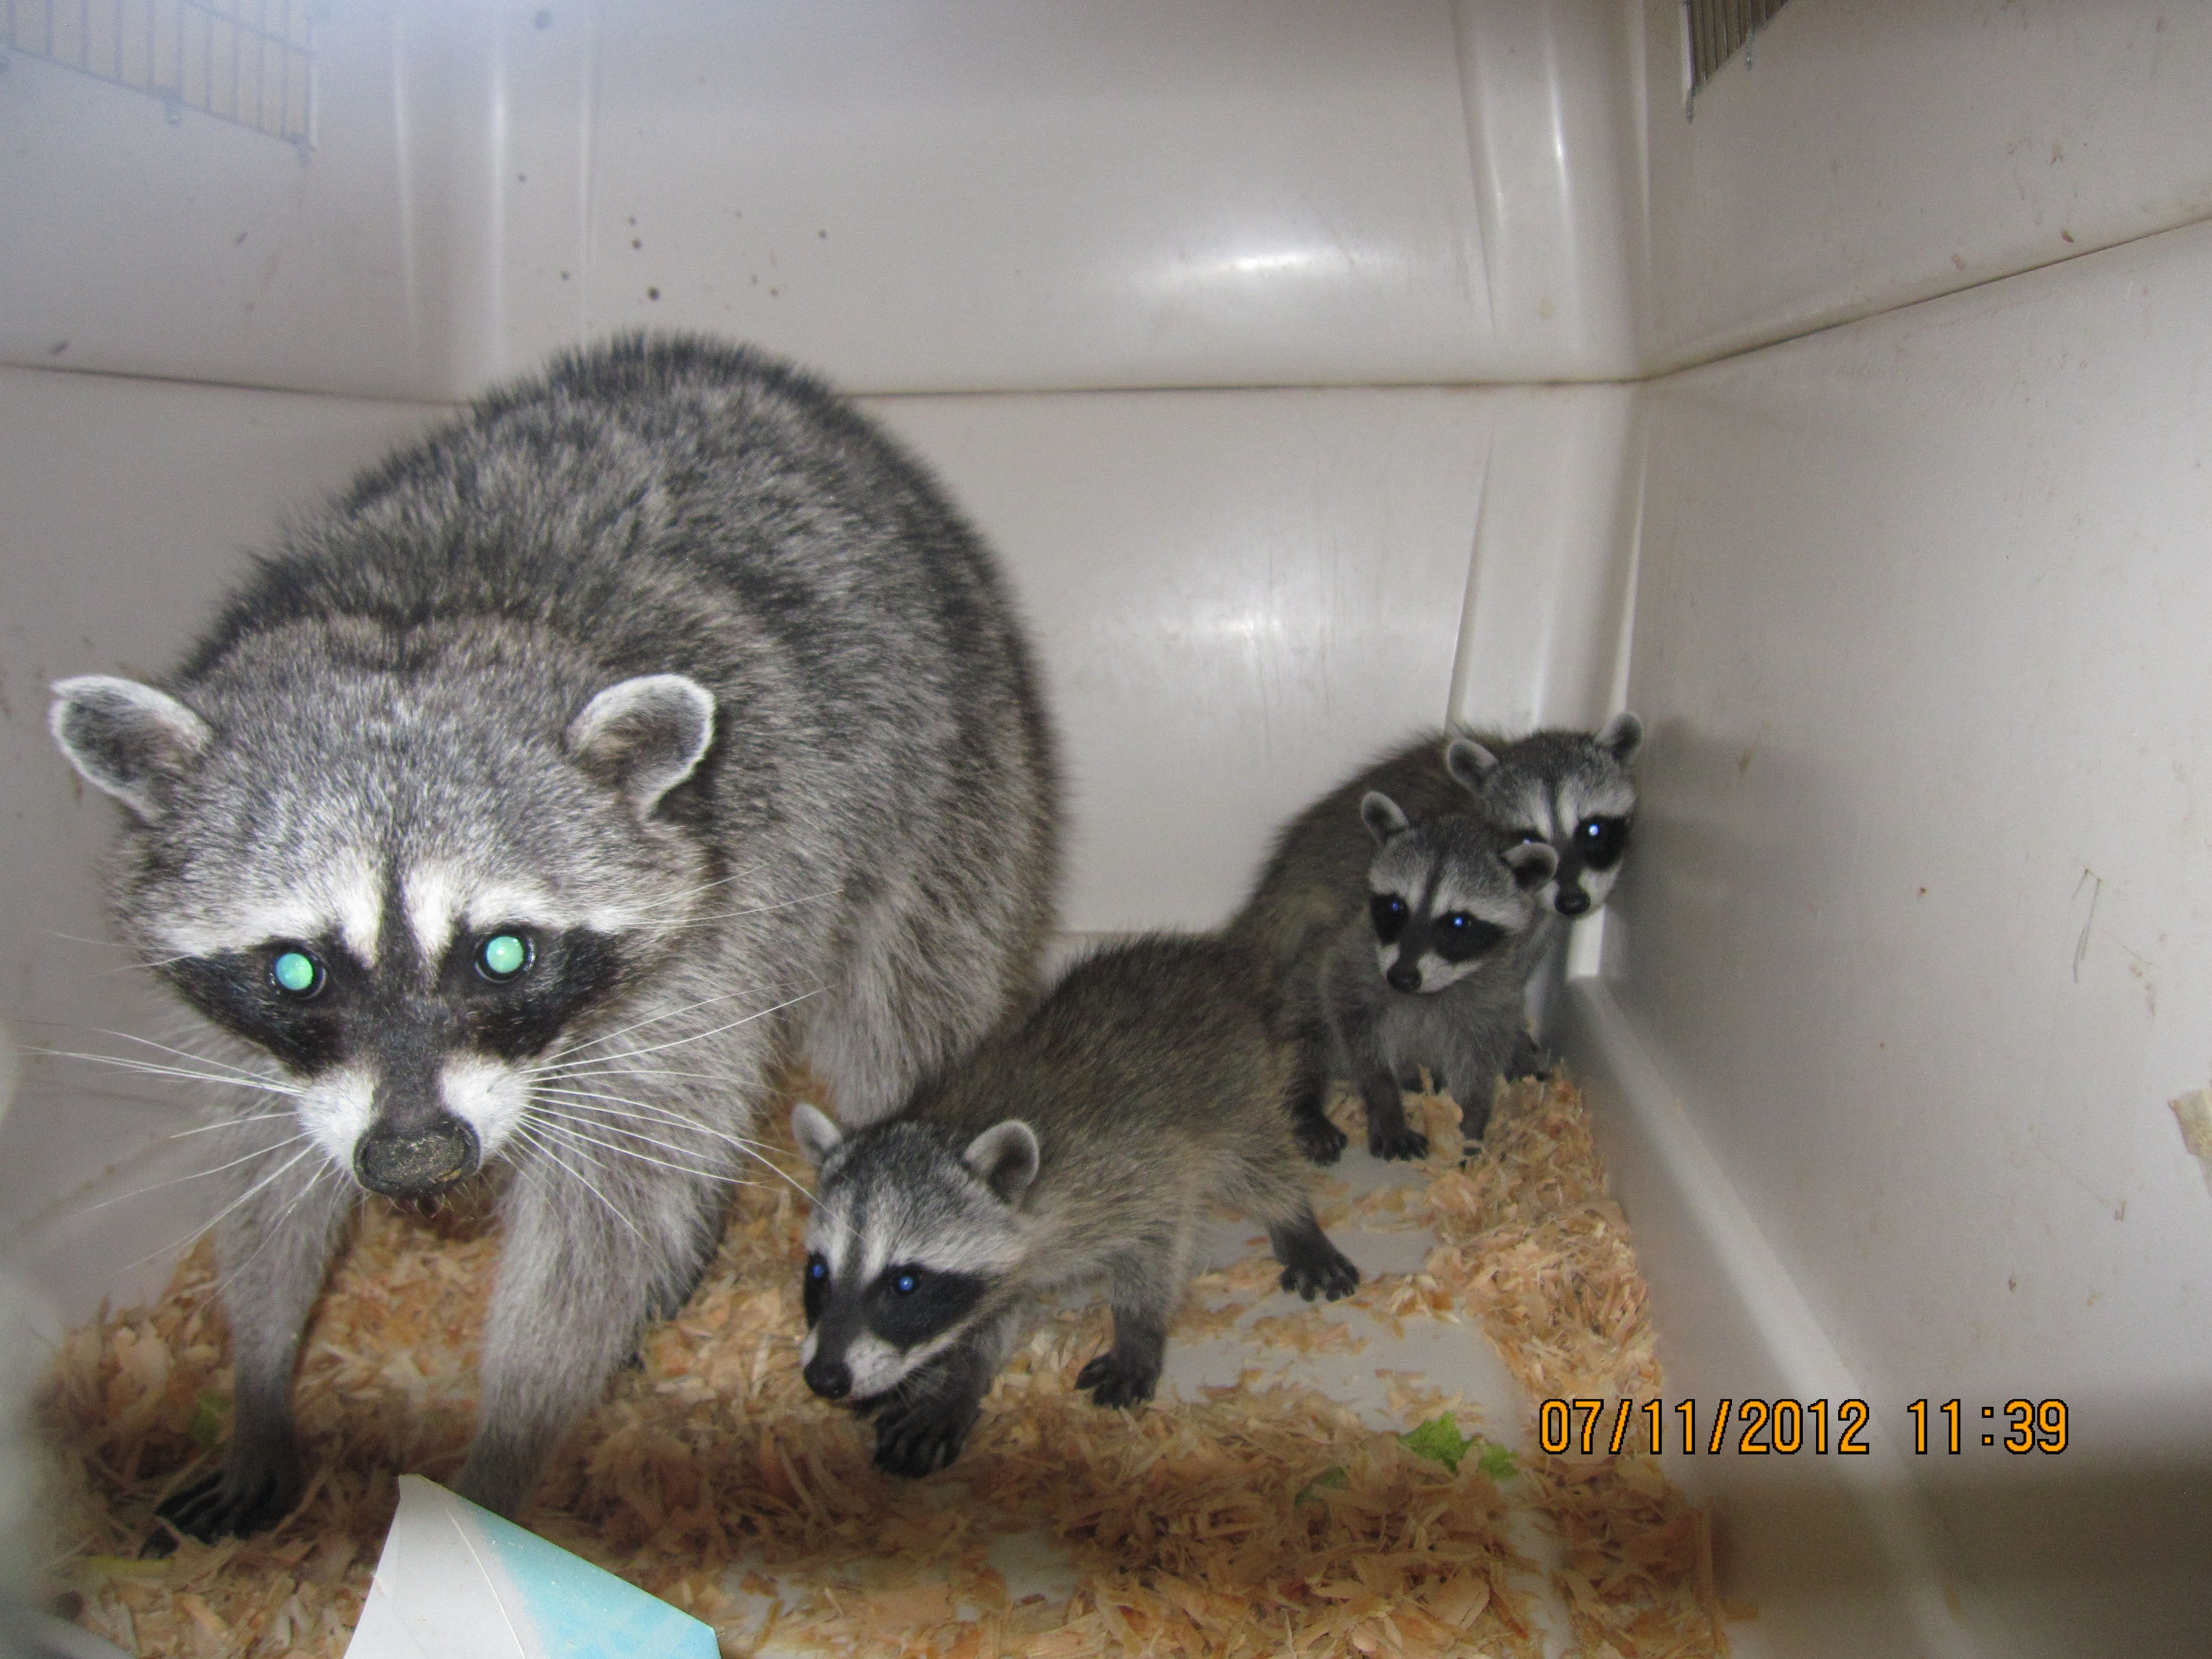 Momma Raccoon and her babies. Rescued from an attic